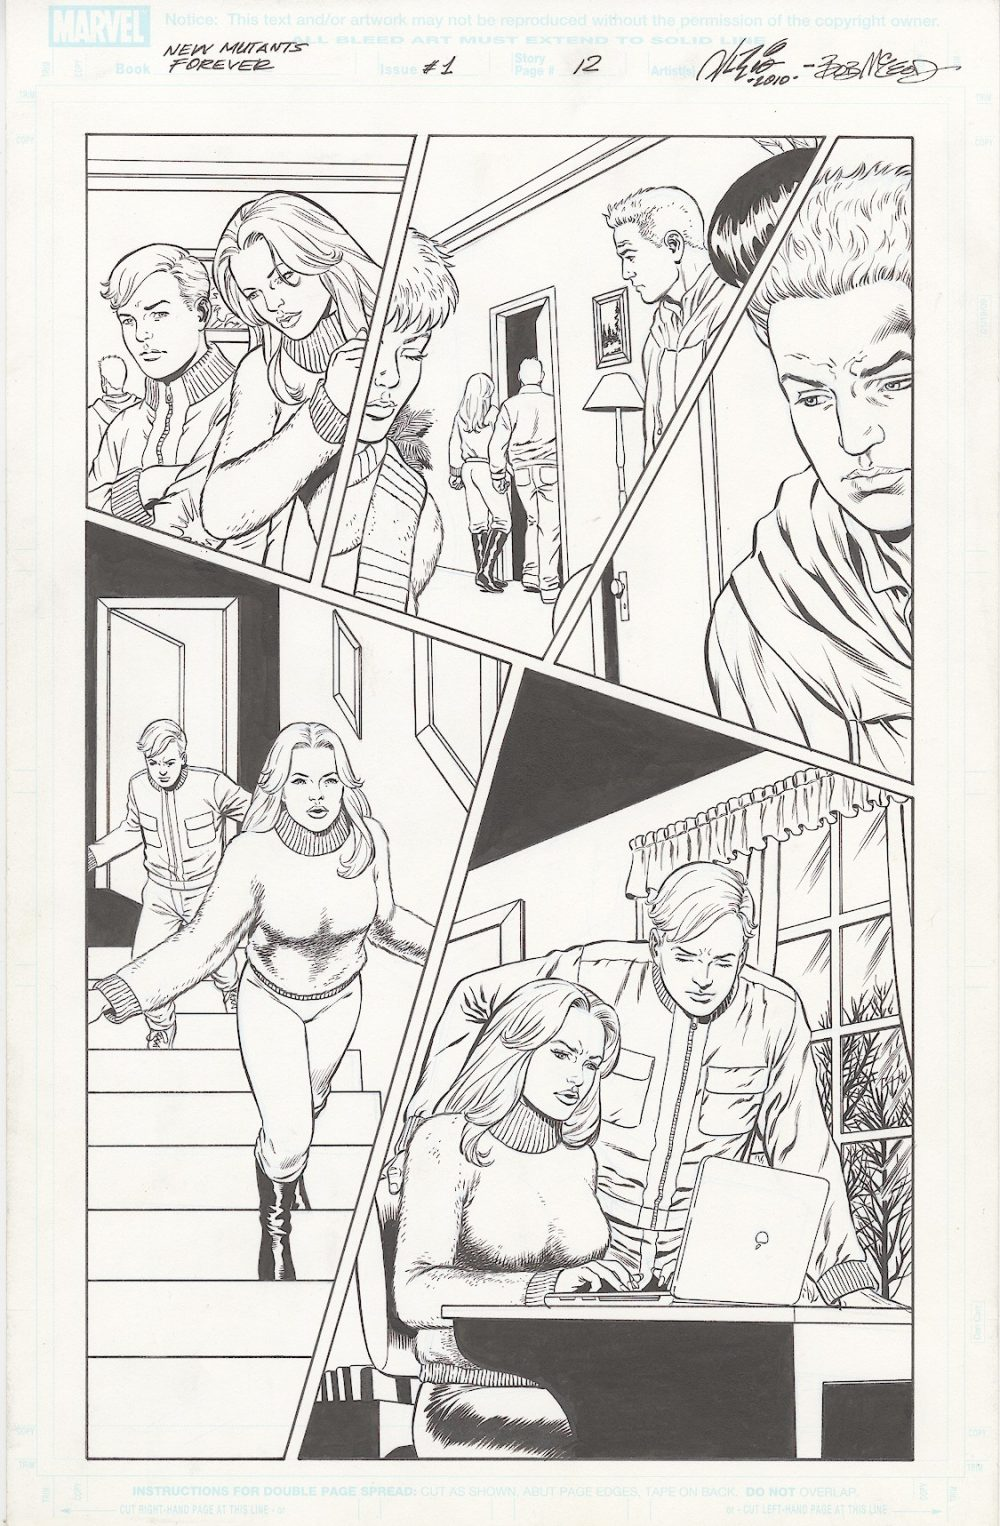 New Mutants Forever – #1, page 12 – pencils by Al Rio, Inks by Bob McLeod, Script by Chris Claremont